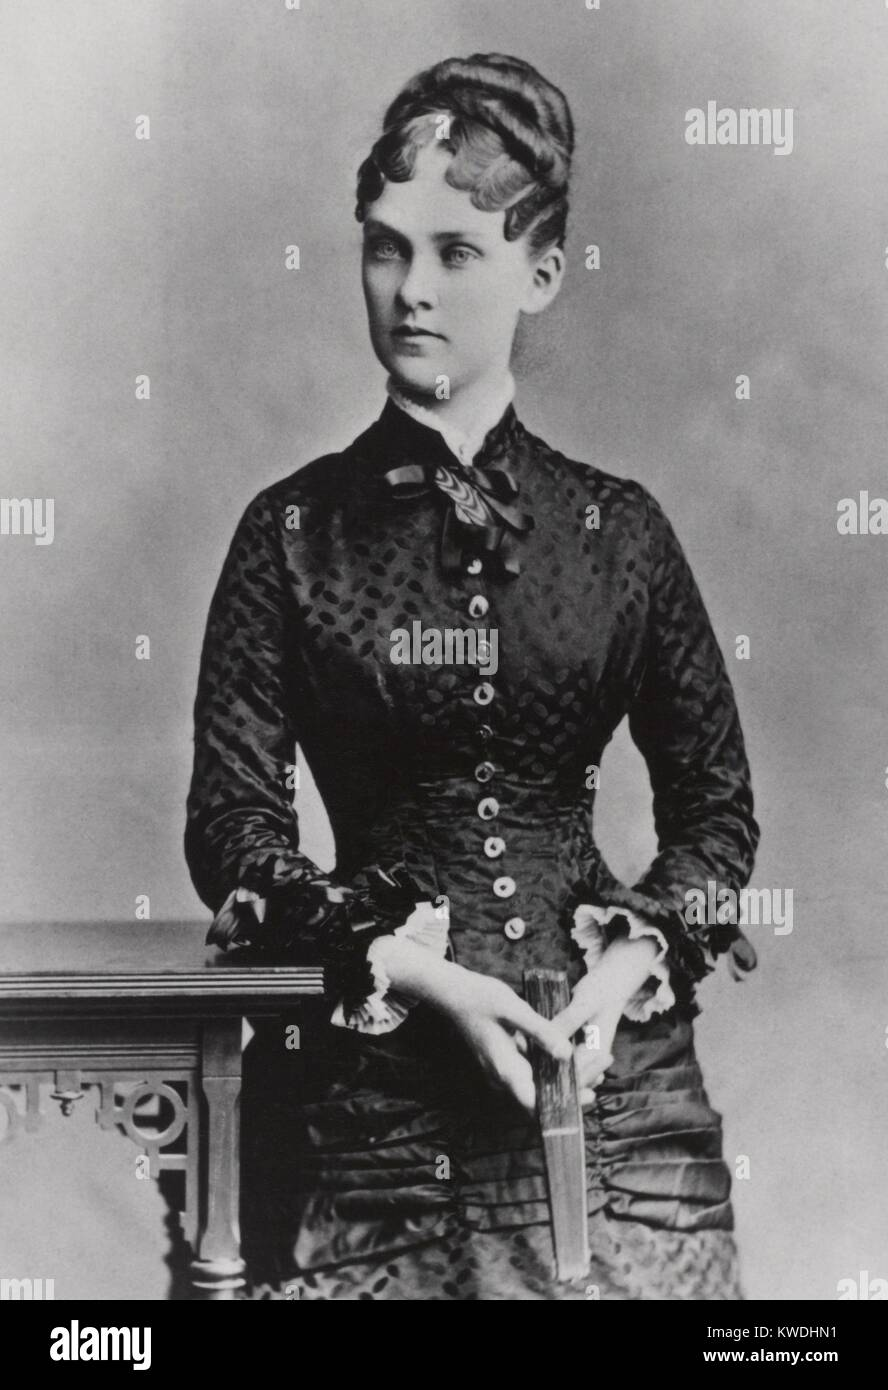 Alice Hathaway Lee Roosevelt, Theodores Roosevelt first wife and mother of Alice Roosevelt. She was married to Roosevelt - Stock Image